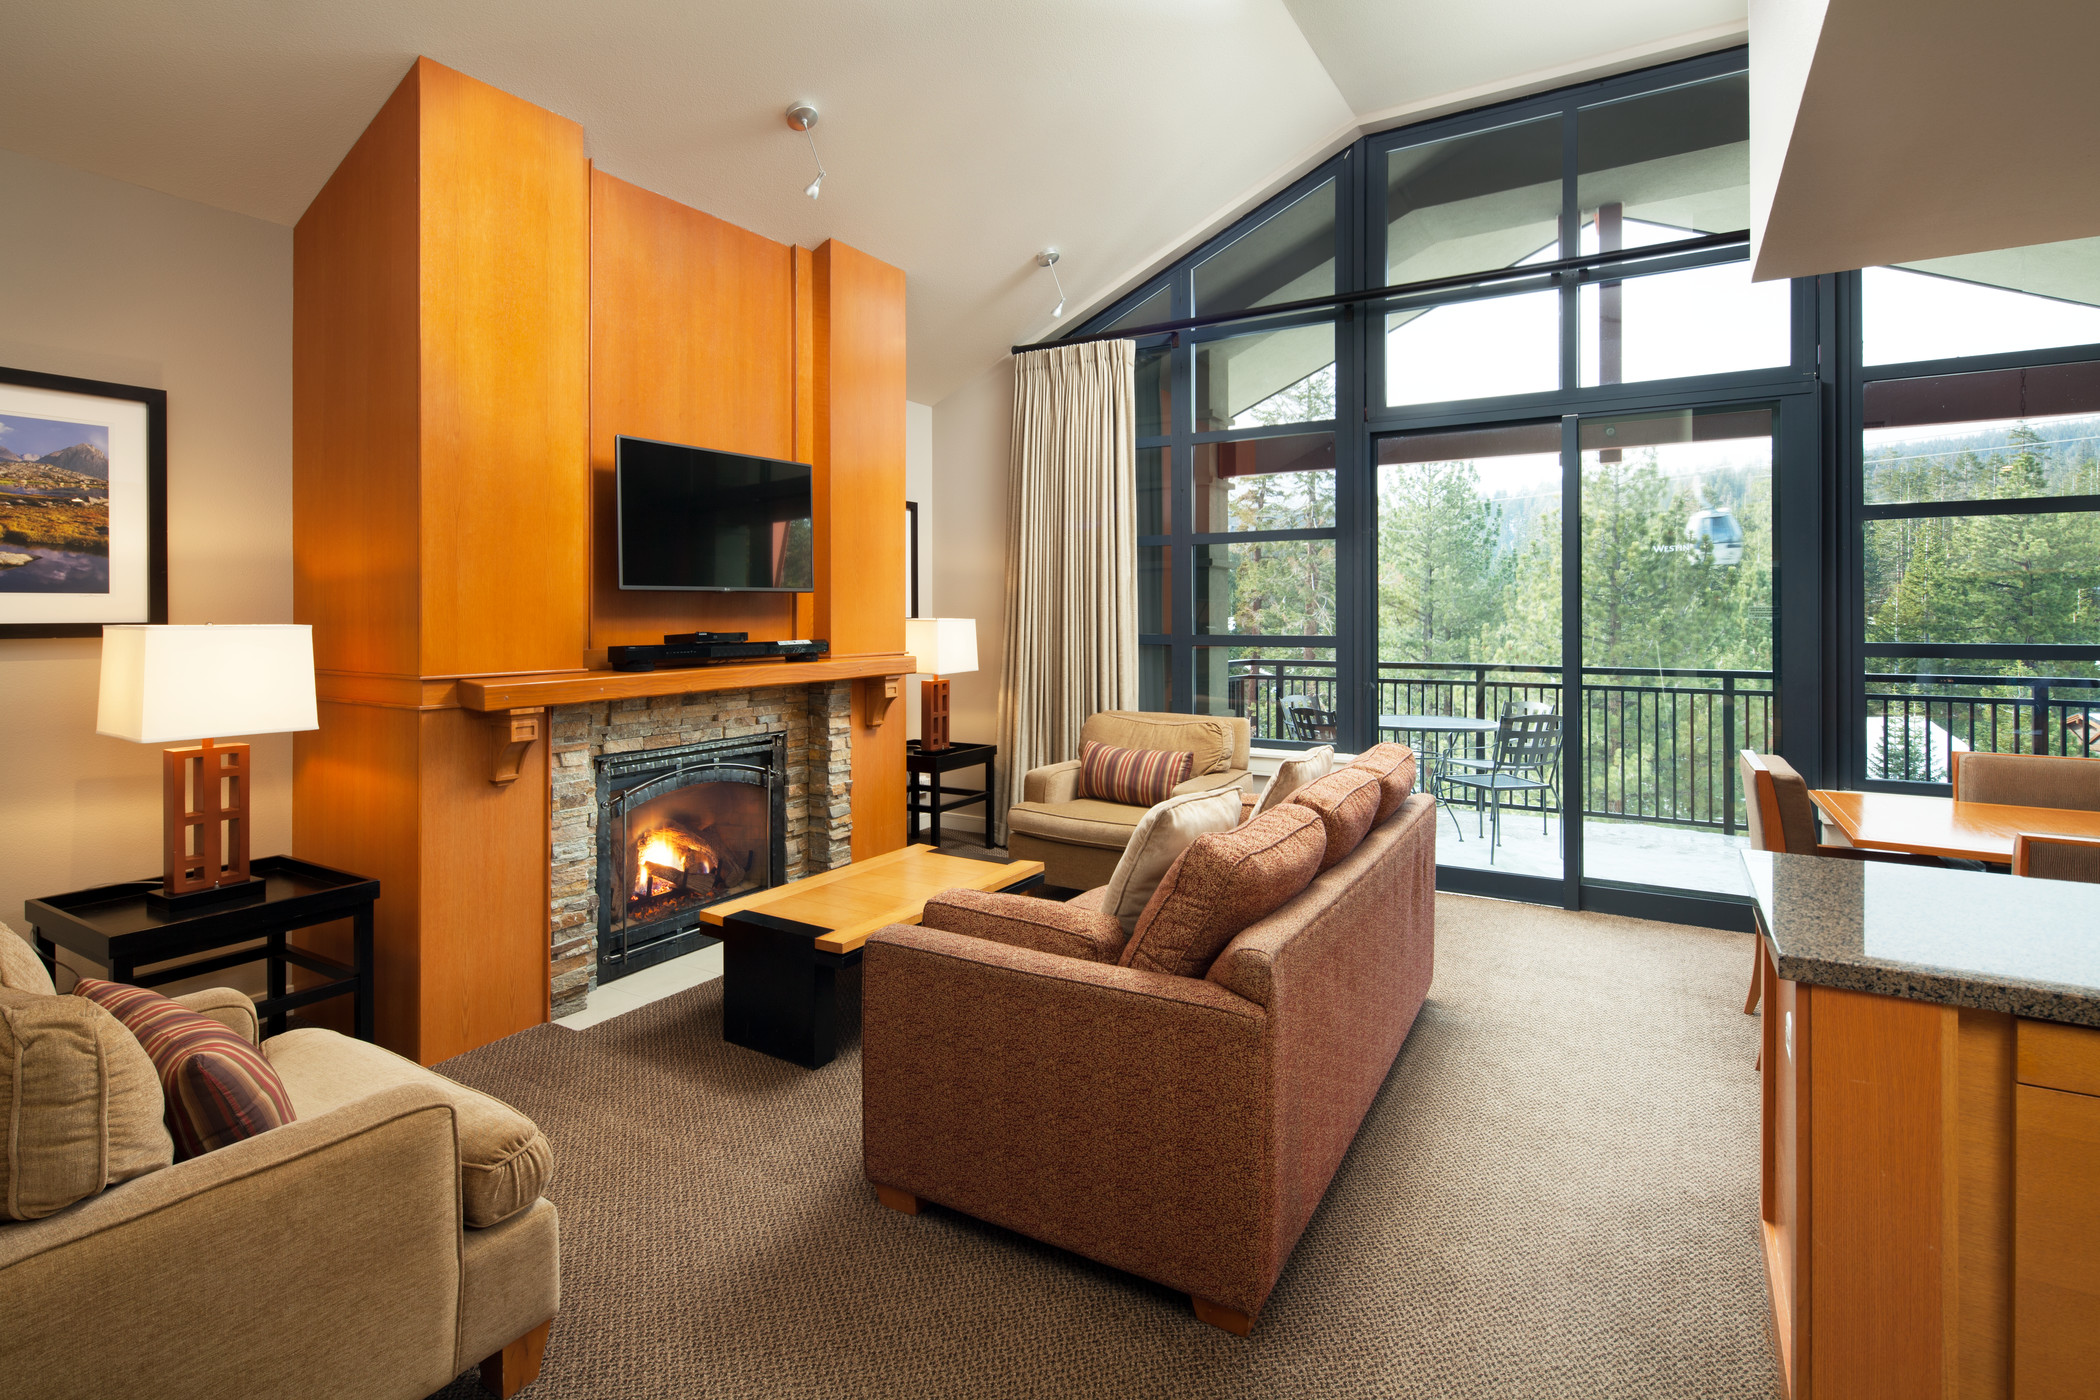 Modern living and dining areas with fireplace, window wall and balcony